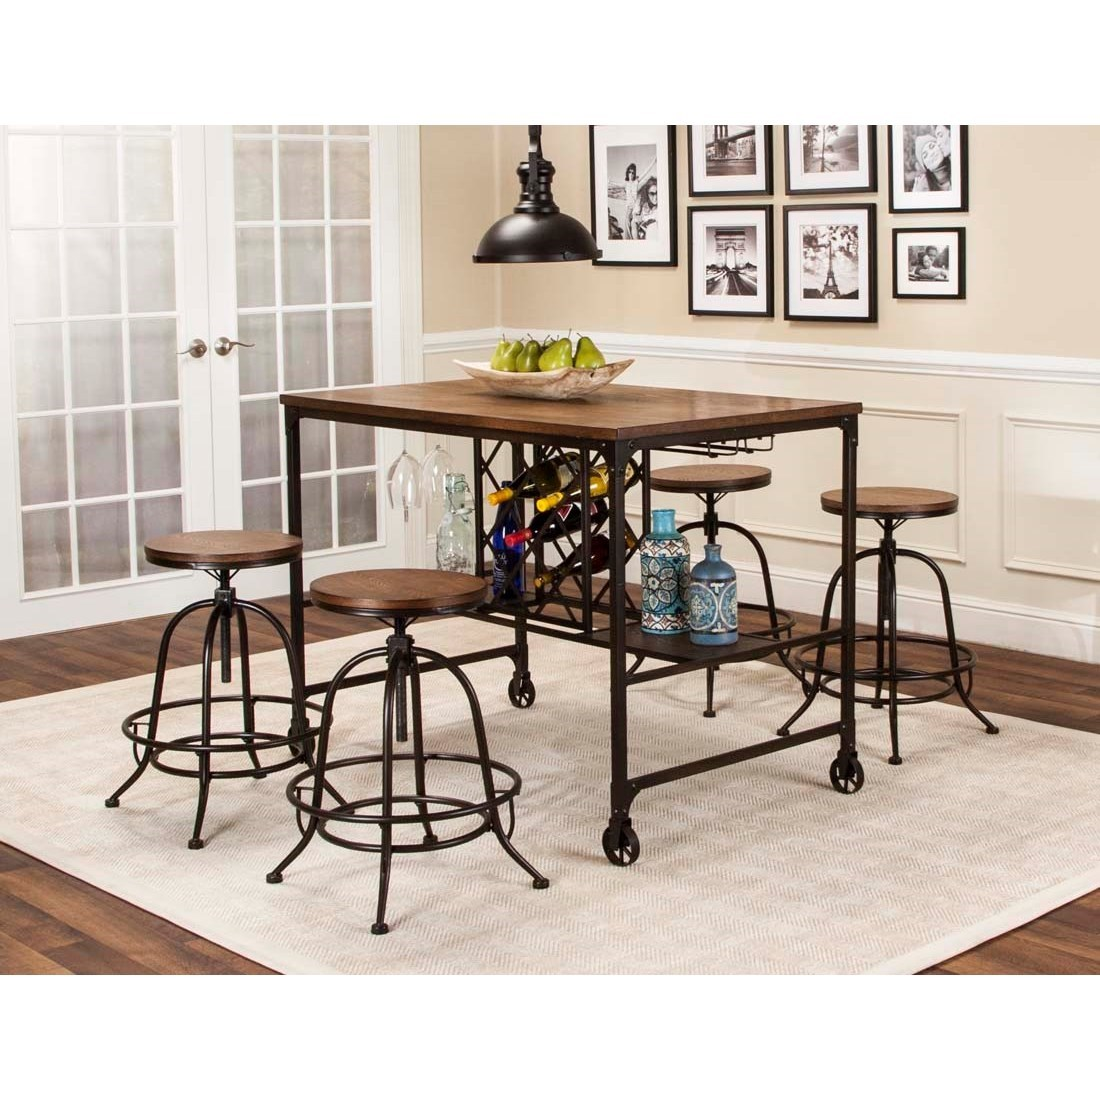 5 piece counter height storage table and swivel stool dining set